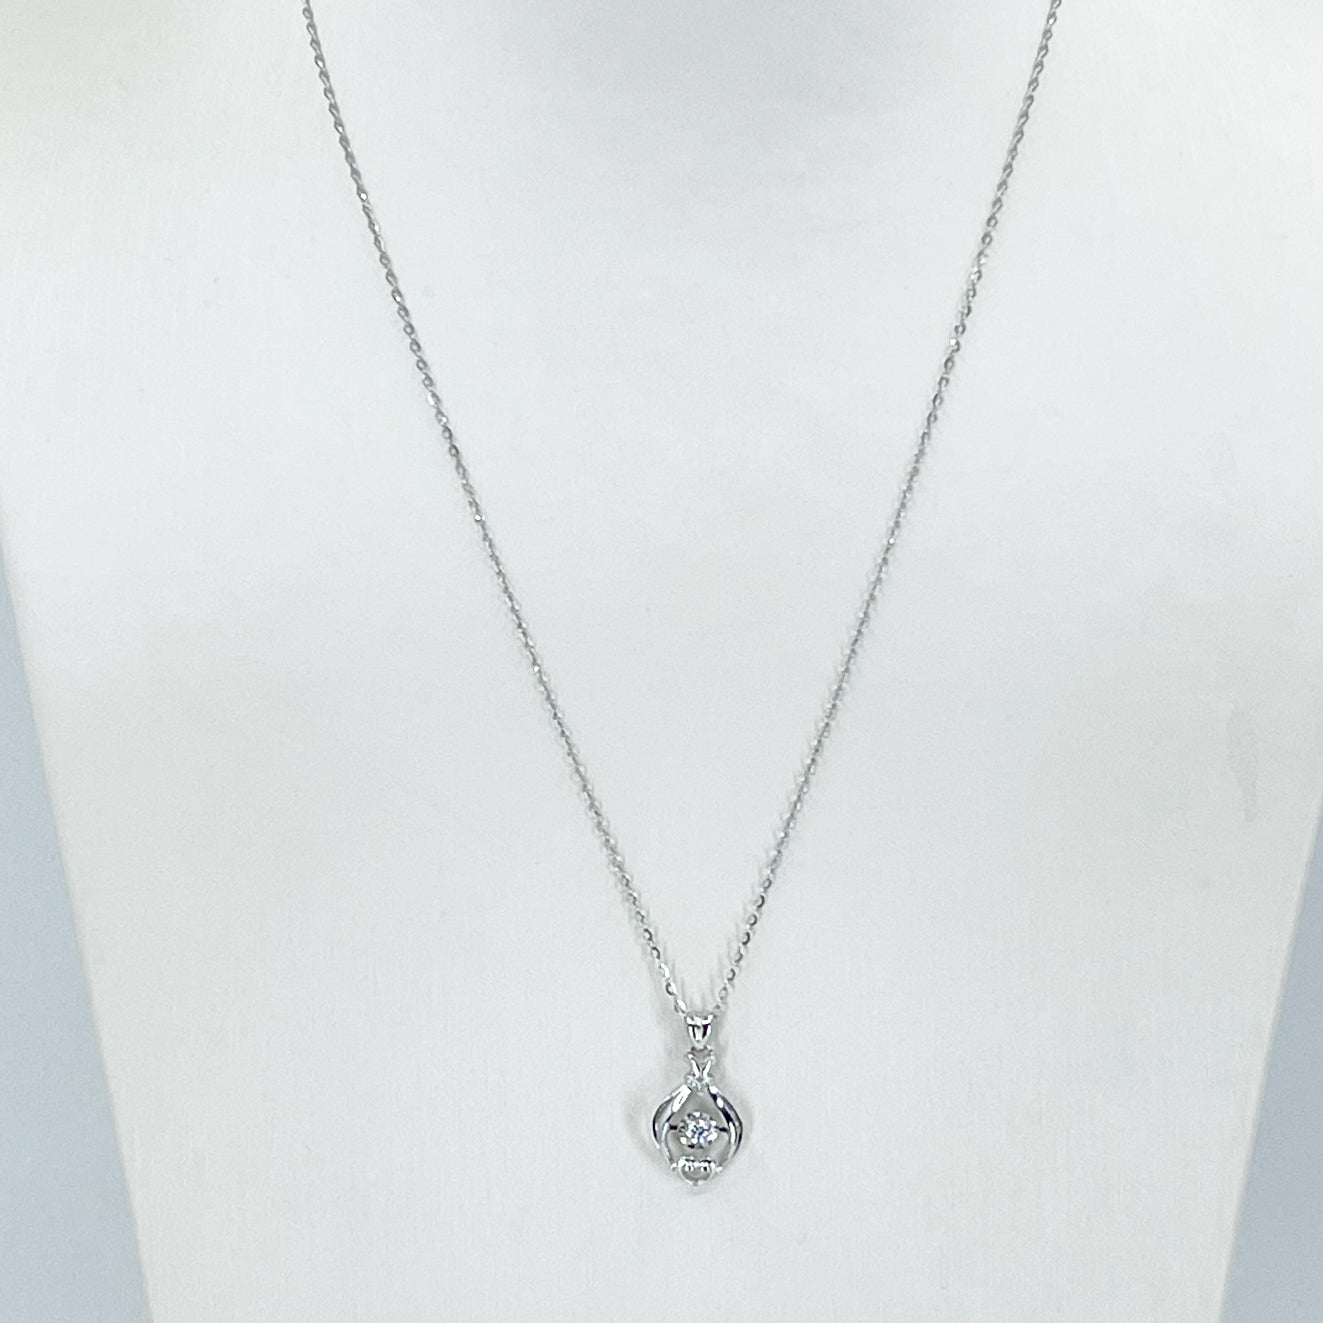 "18K Solid White Gold Round Link Chain Necklace with Diamond Pendant 18"" D0.052 CT"